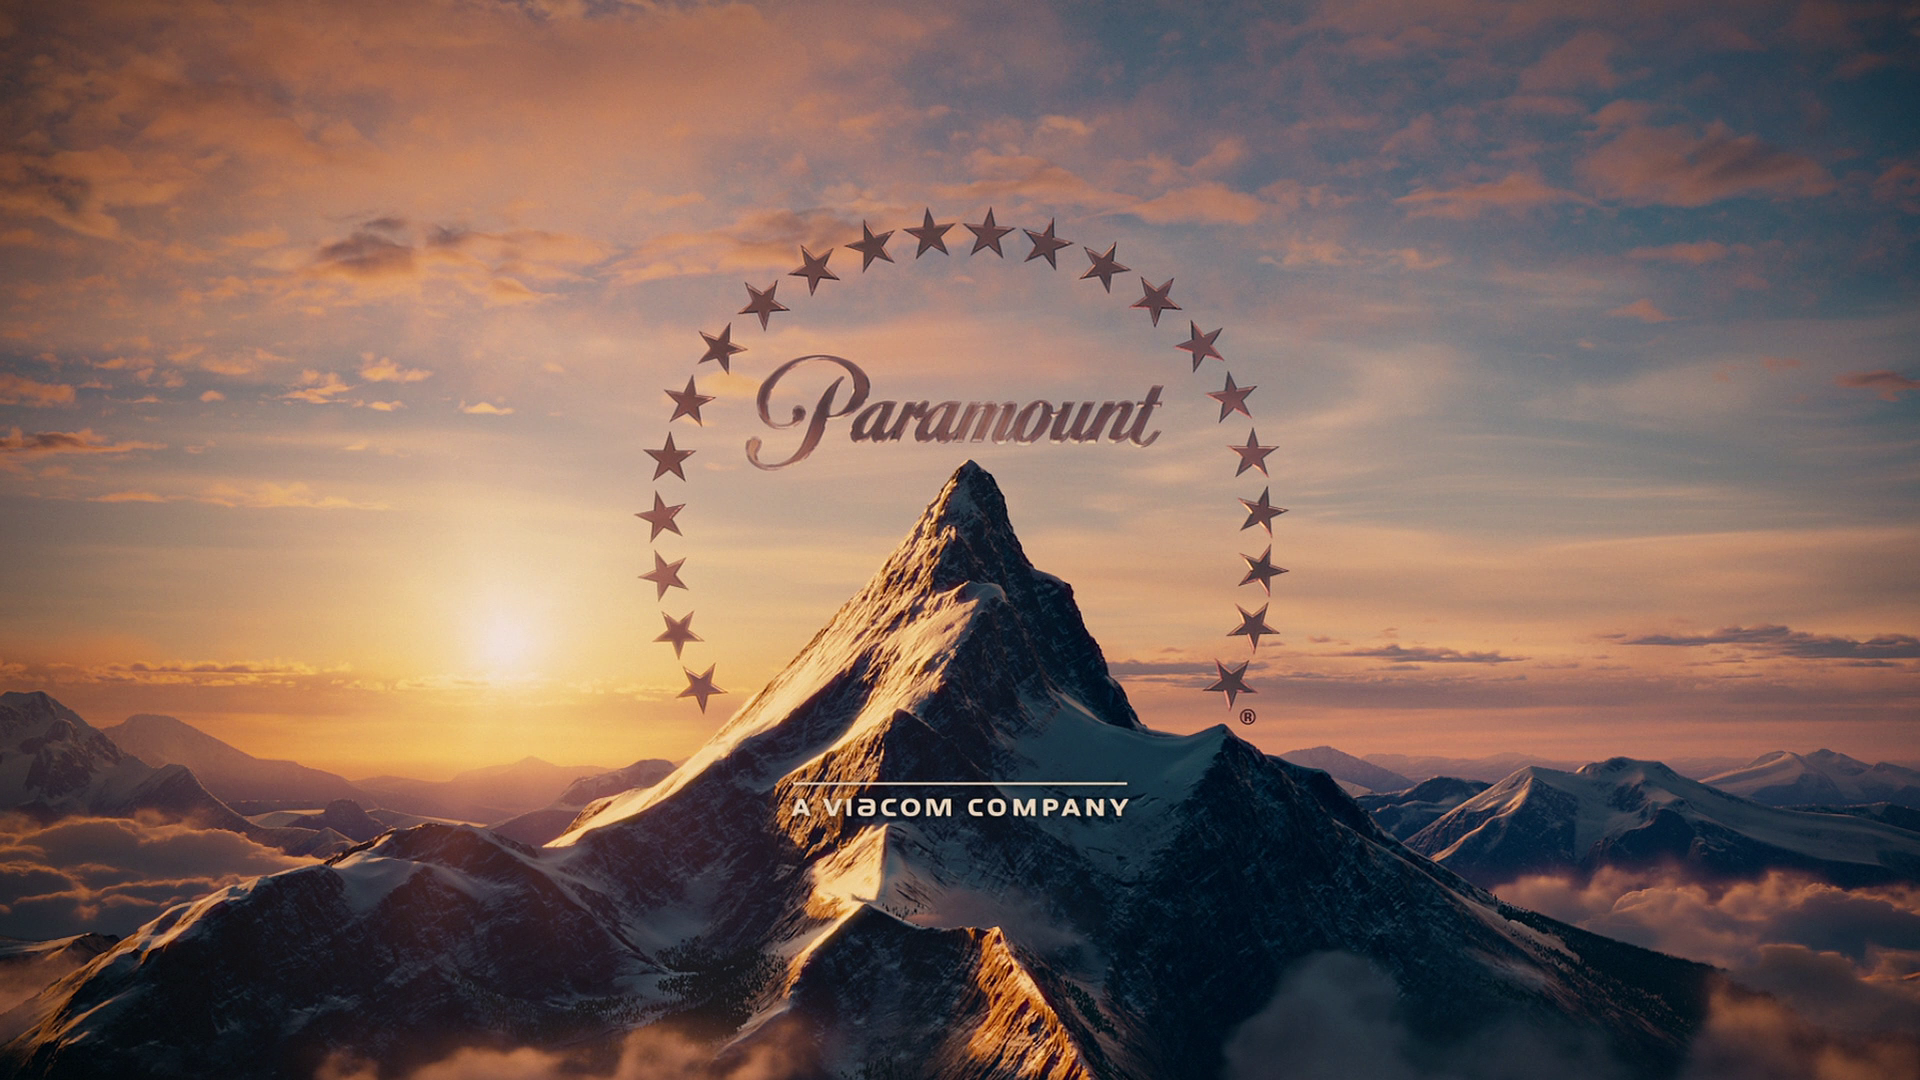 paramount pictures dreamworks animation wiki fandom 20th anniversary logo templates 20th anniversary logo png